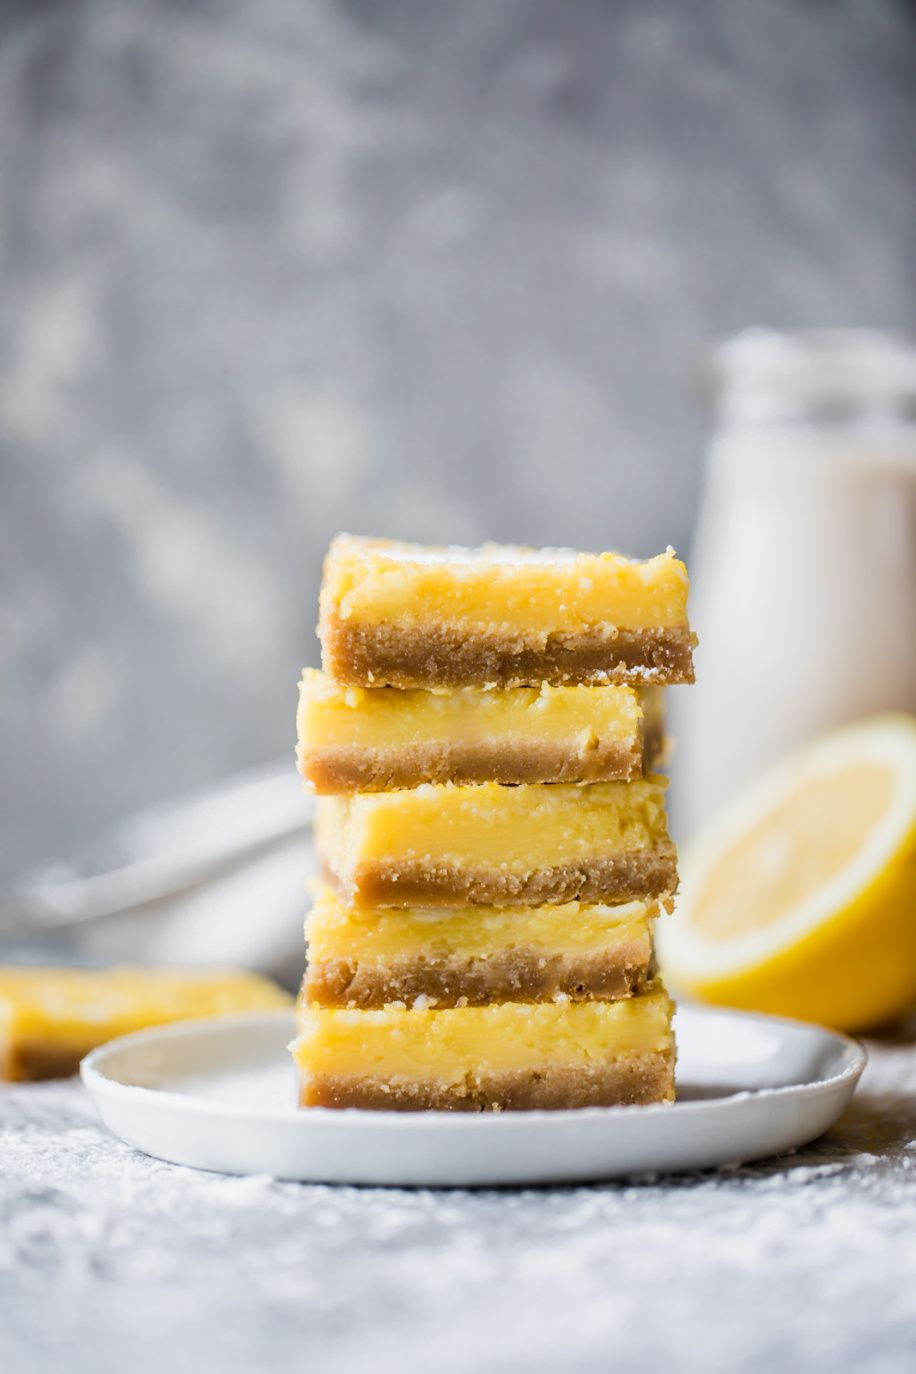 Healthy lemon bars that are gluten free, dairy free and paleo! The crust is made with a mix of almond flour and coconut flour and the light lemon filling is made with just 4 simple ingredients: fresh lemon juice, honey, eggs and coconut flour. You're going to LOVE these easy to make bars -- they're great for parties! #lemonbars #glutenfreedessert #grainfree #paleodiet #paleodessert #healthydessert